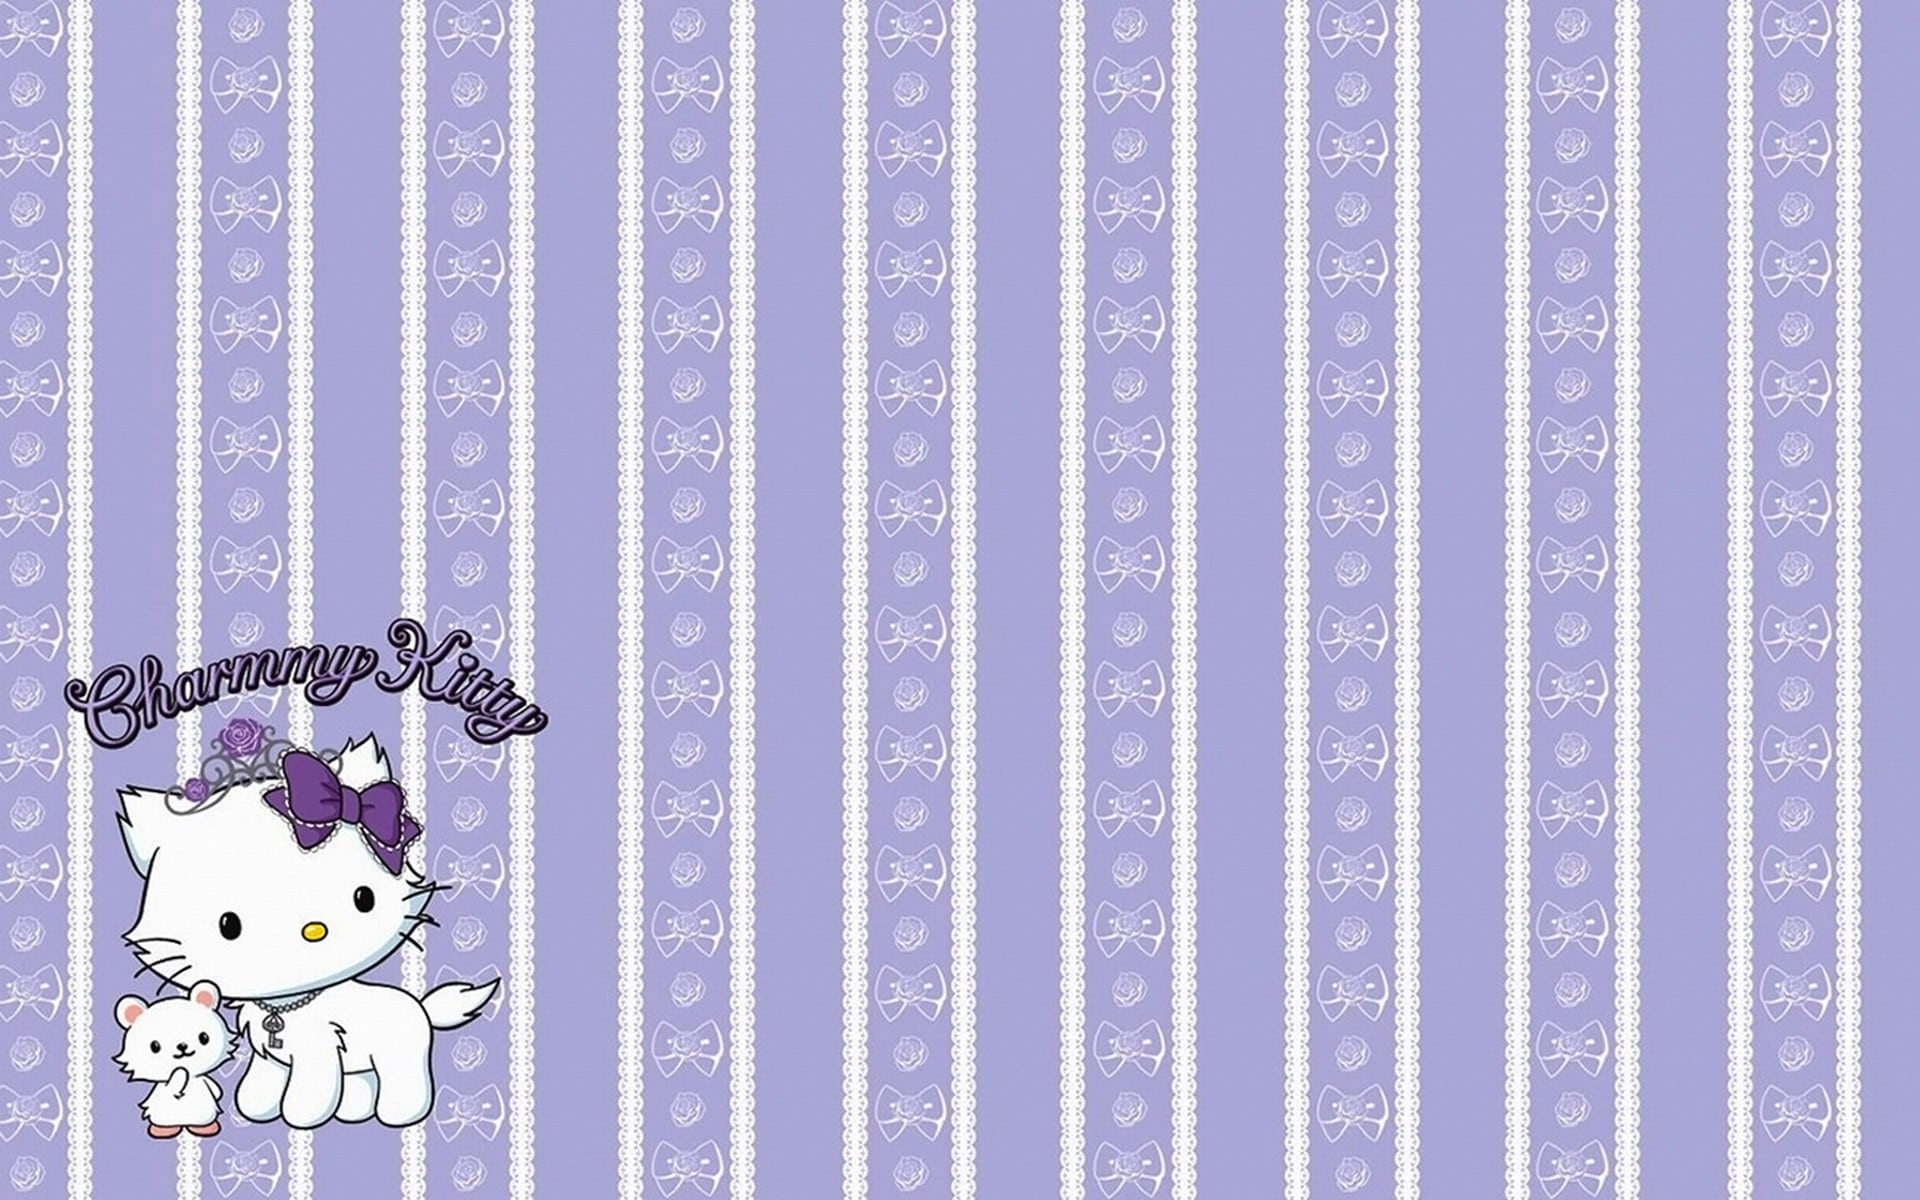 Hello Kitty Background For Invitation 2